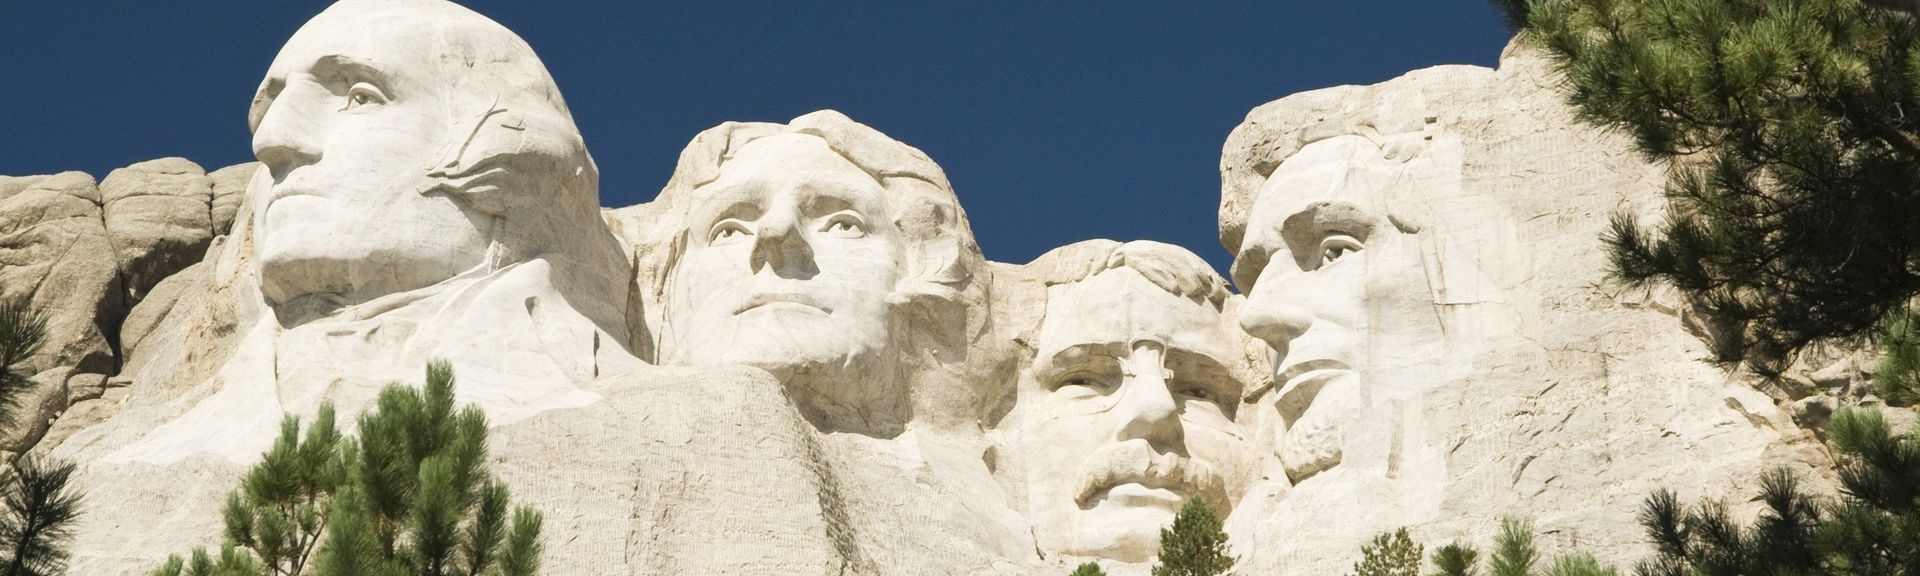 Mount Rushmore, Keystone, Dakota do Sul, Estados Unidos